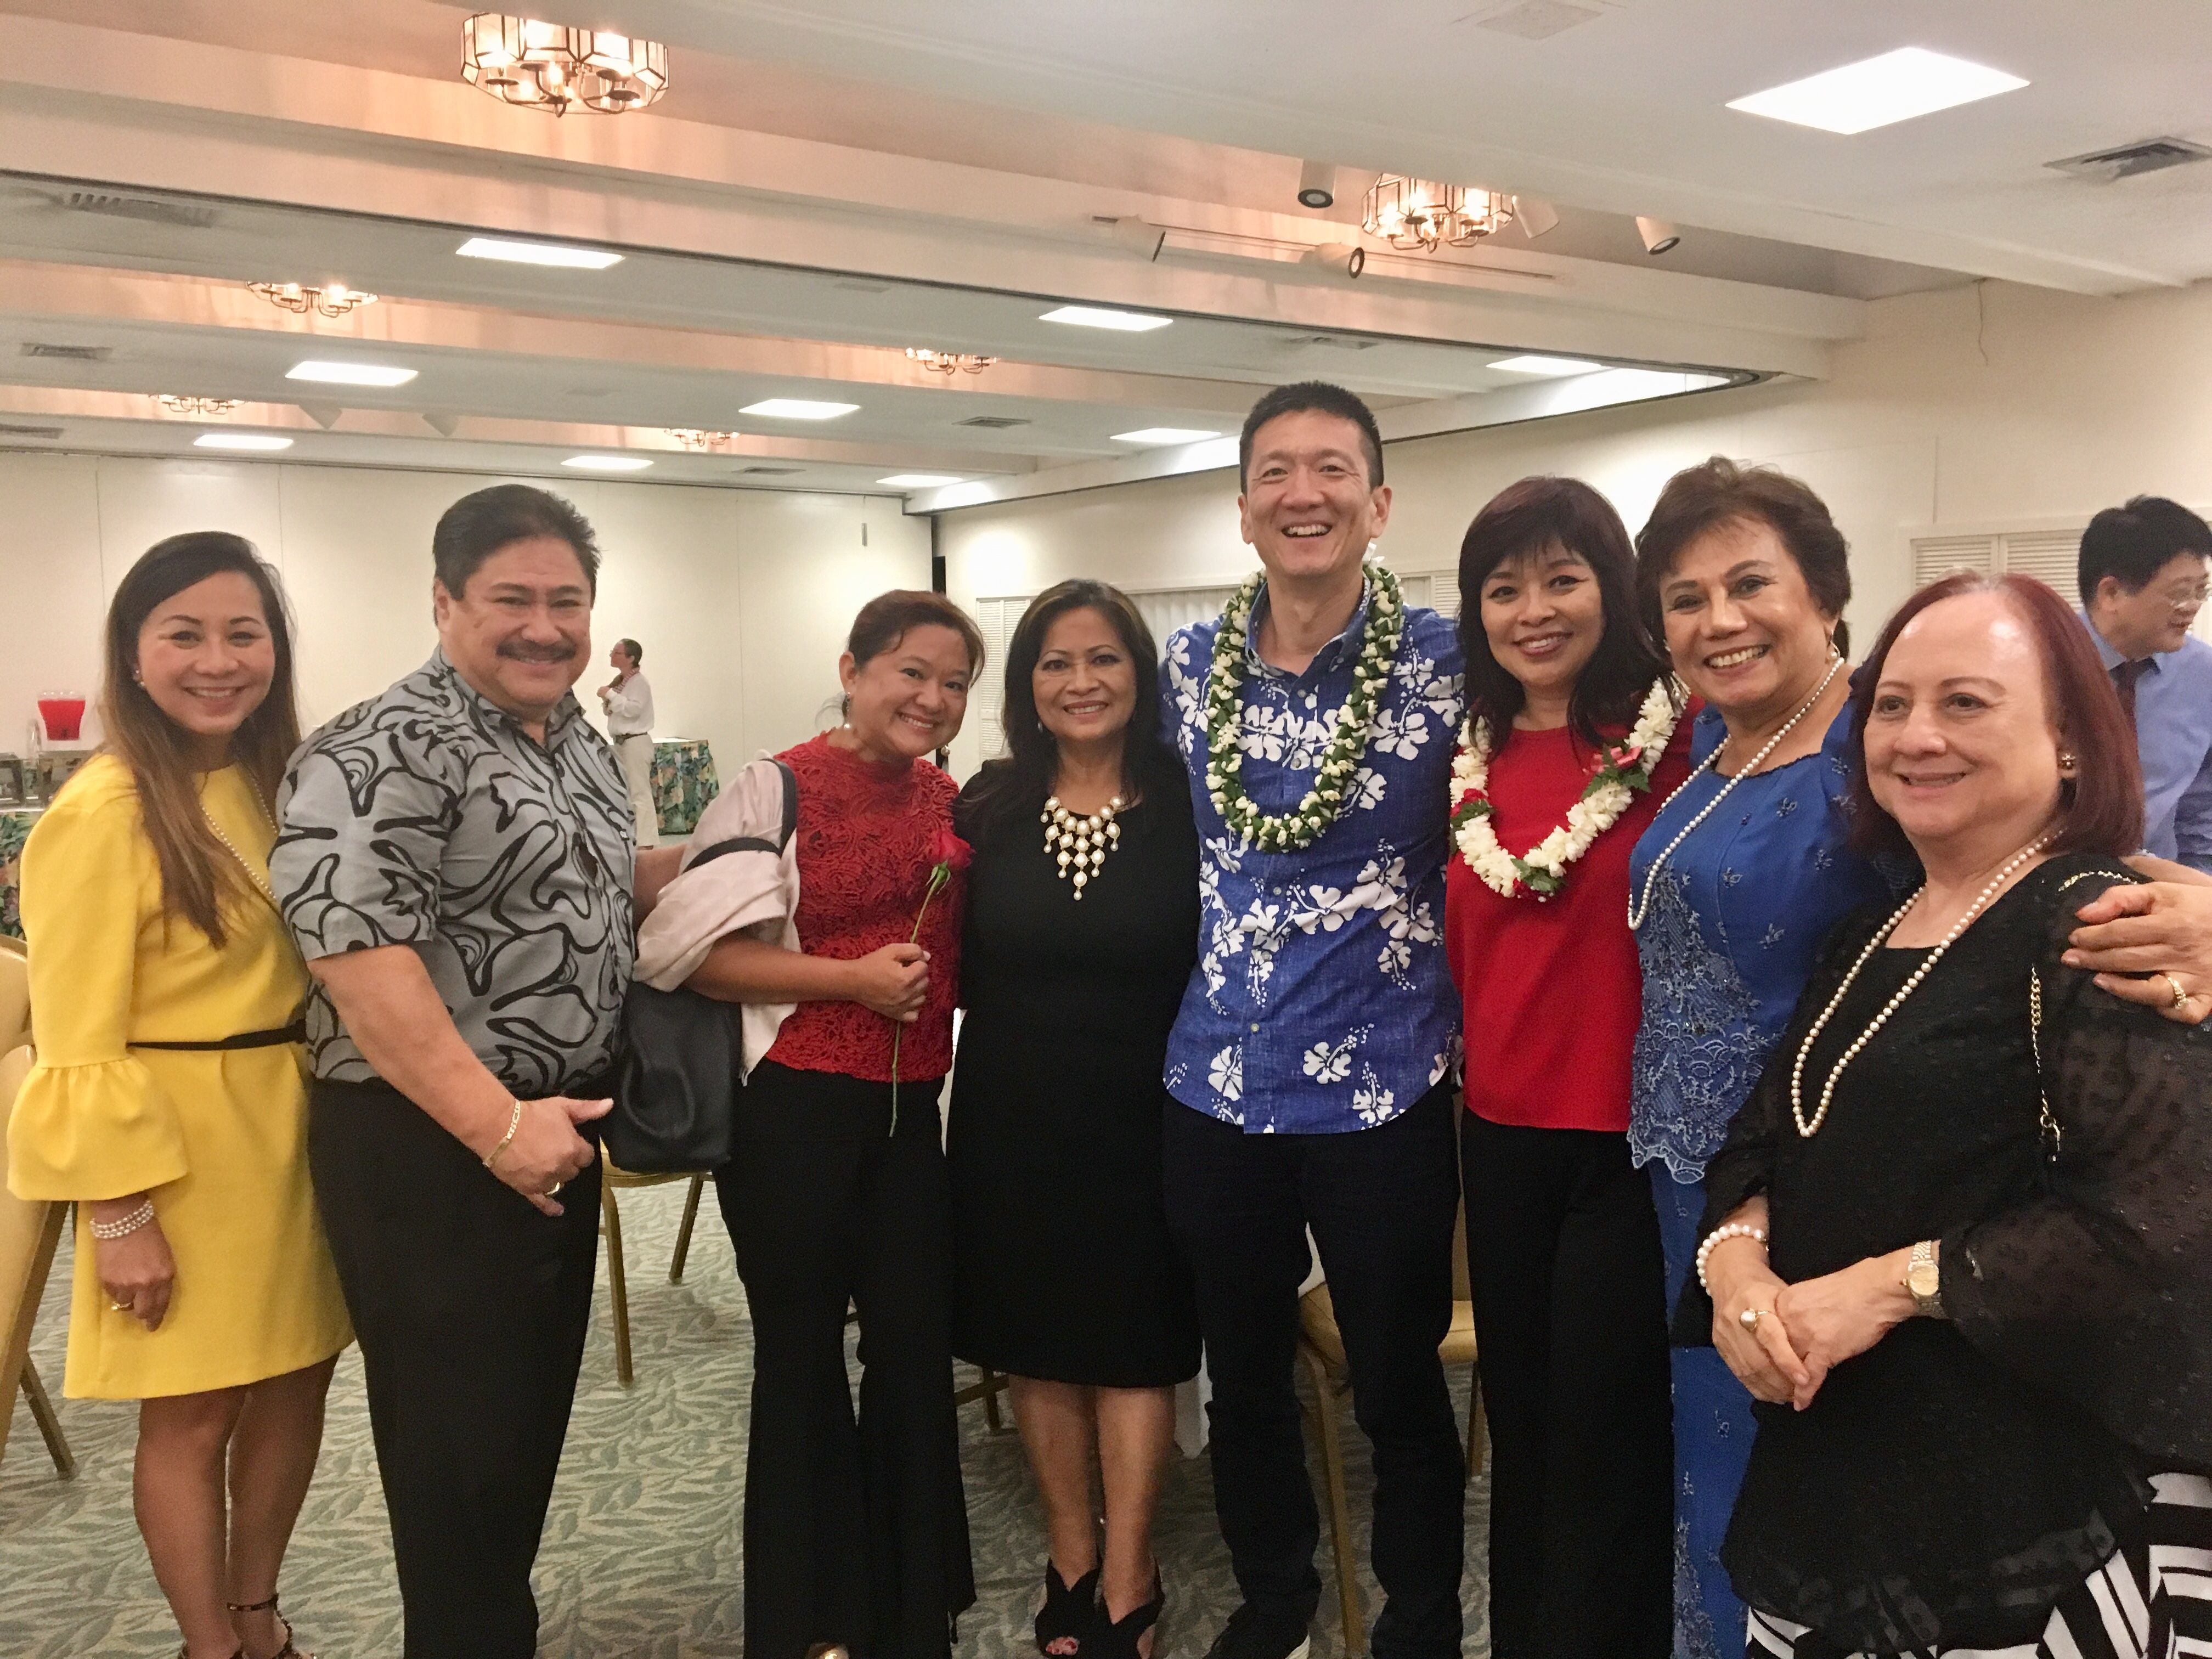 Lt. Governor Chin with members of the 2018 Trade Mission Delegation